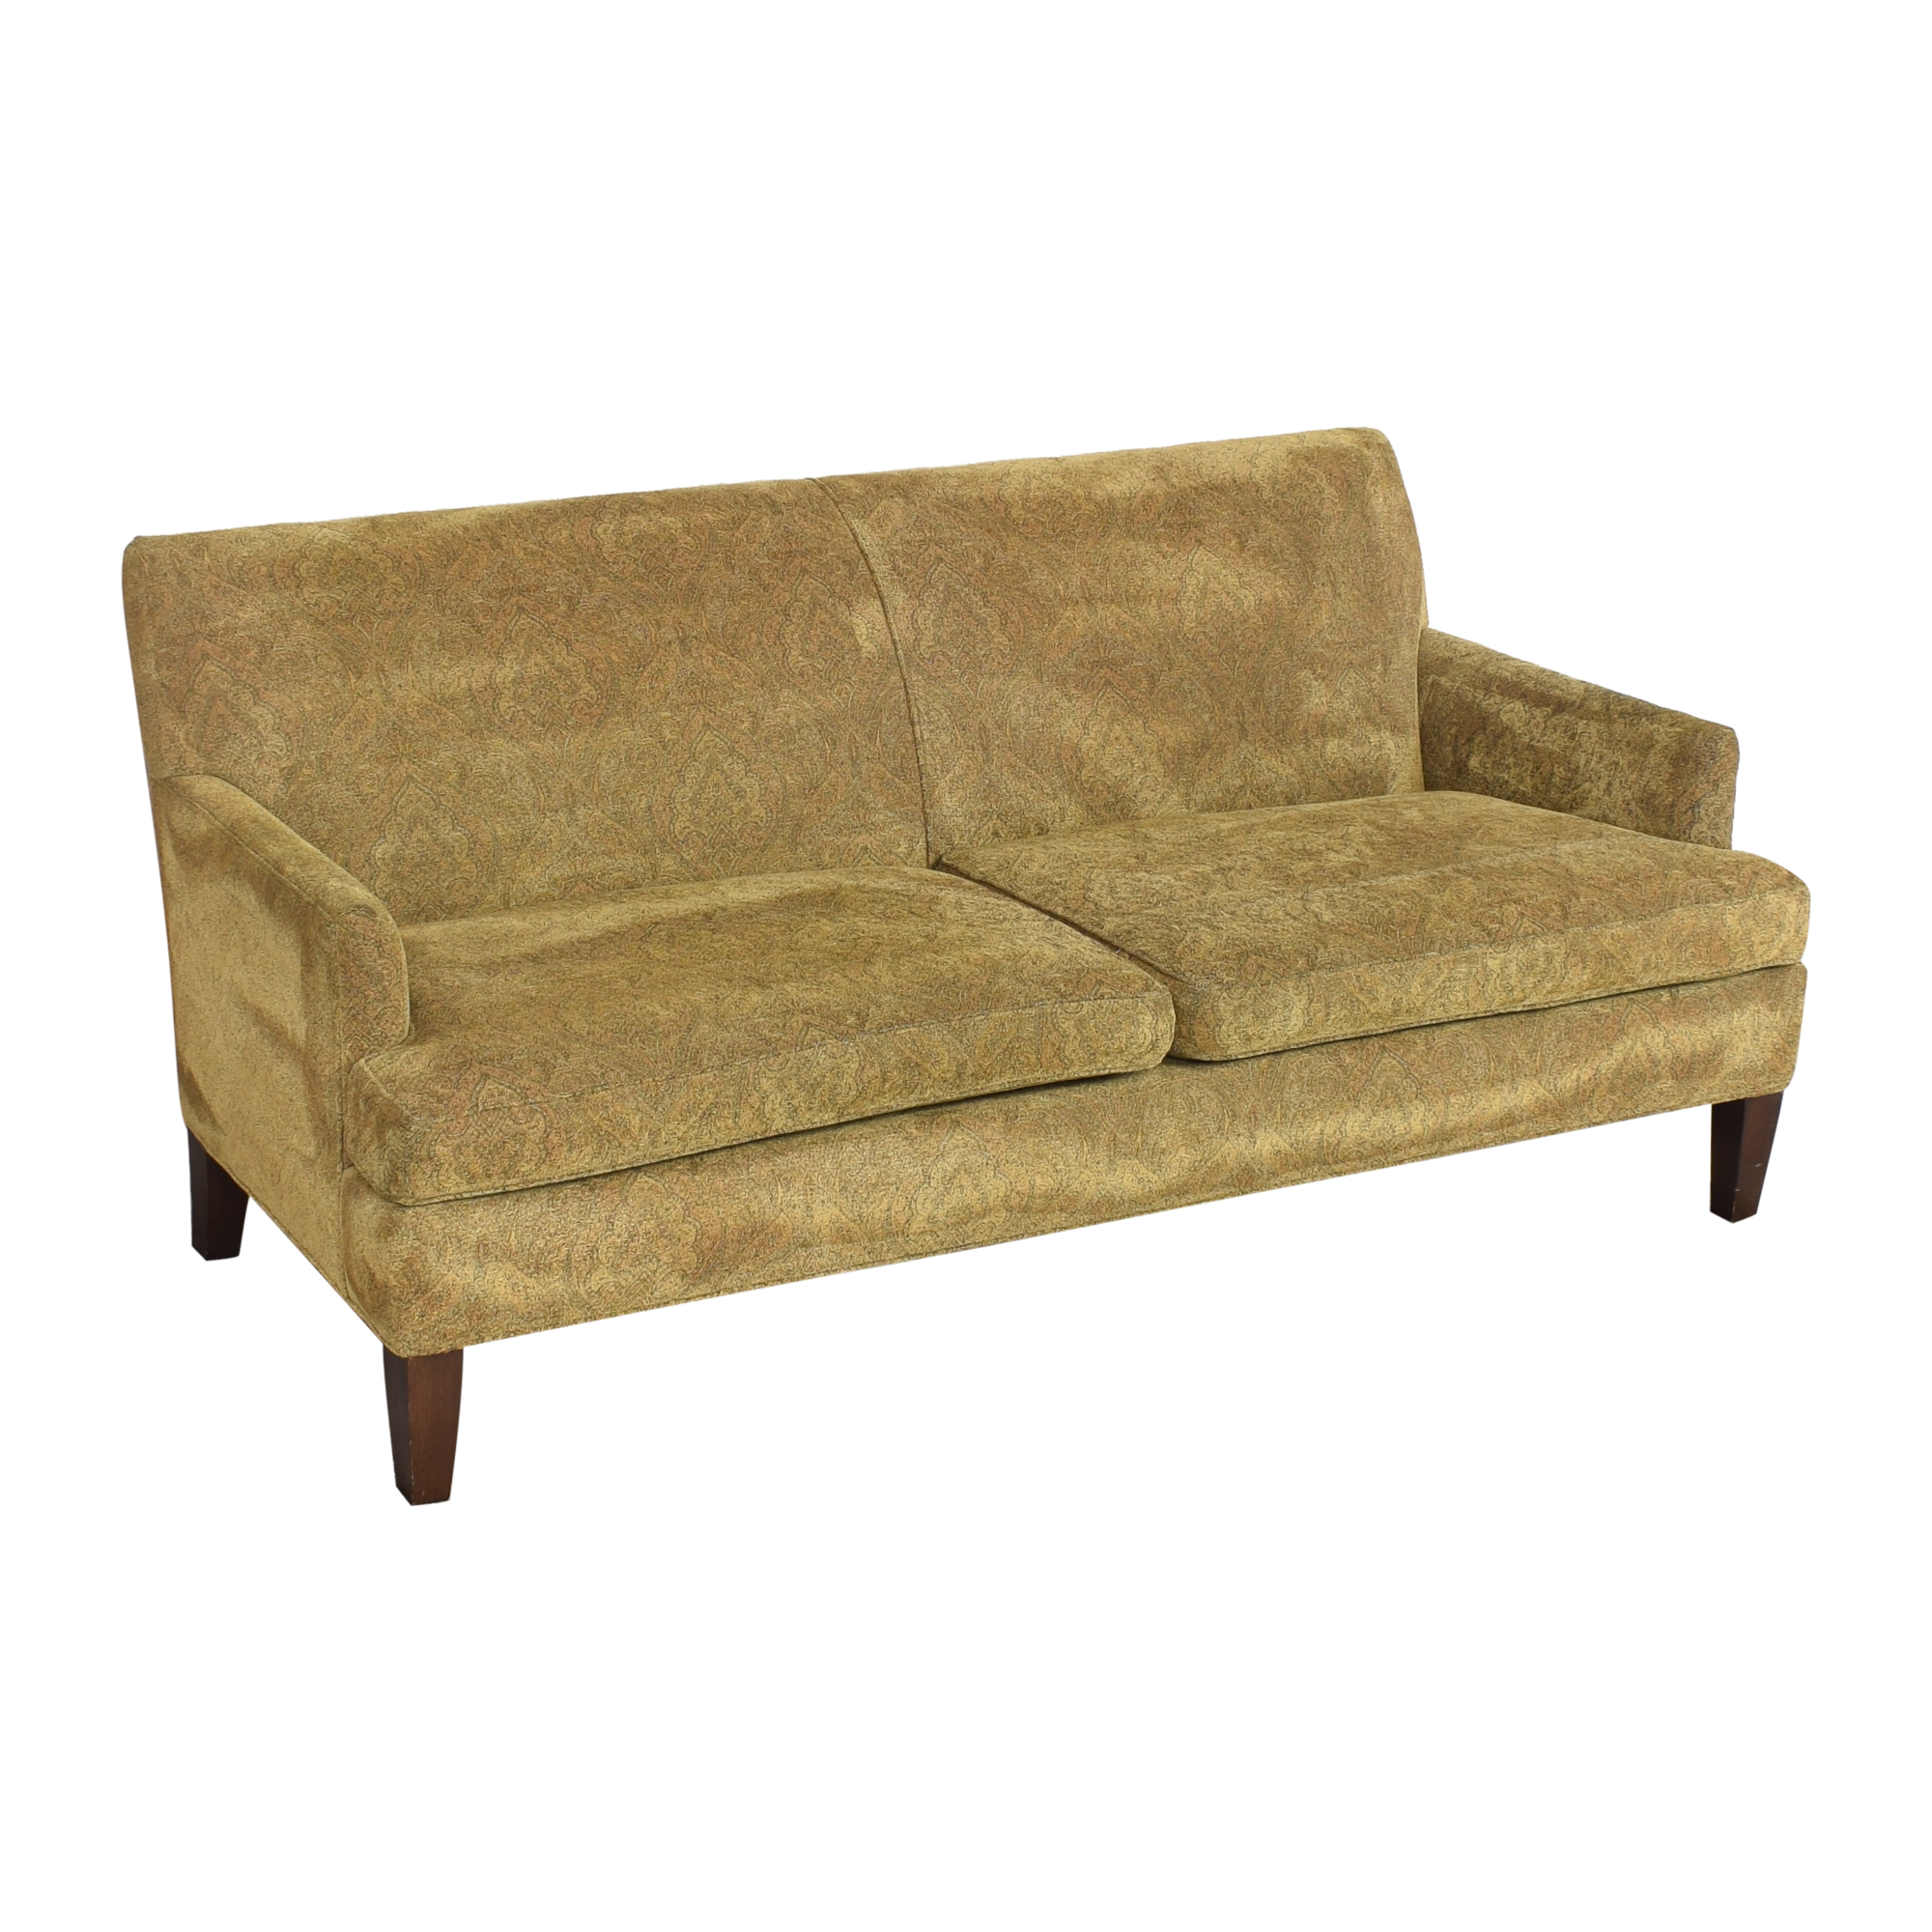 Lee Industries Lee Industries Two Cushion Apartment Sofa price